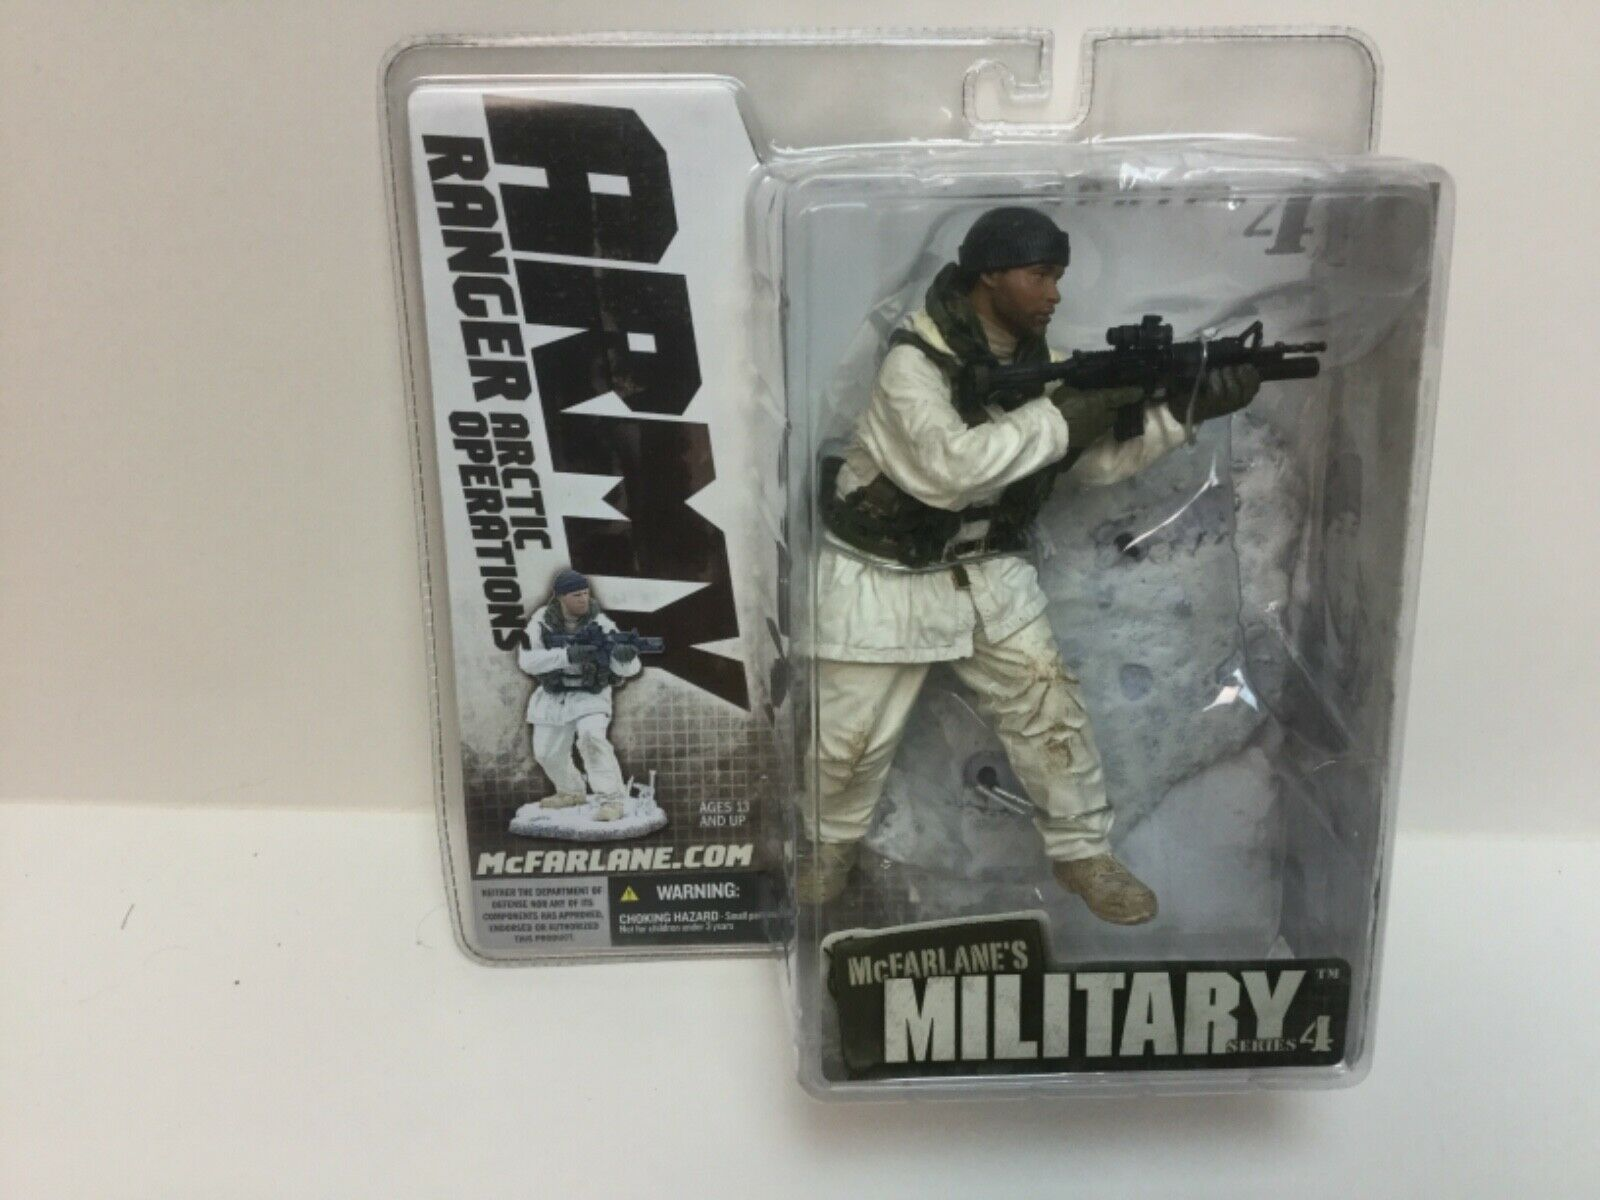 2006 McFarlane Military Series 4 Ethnic US Army Ranger Arctic Operations Figure